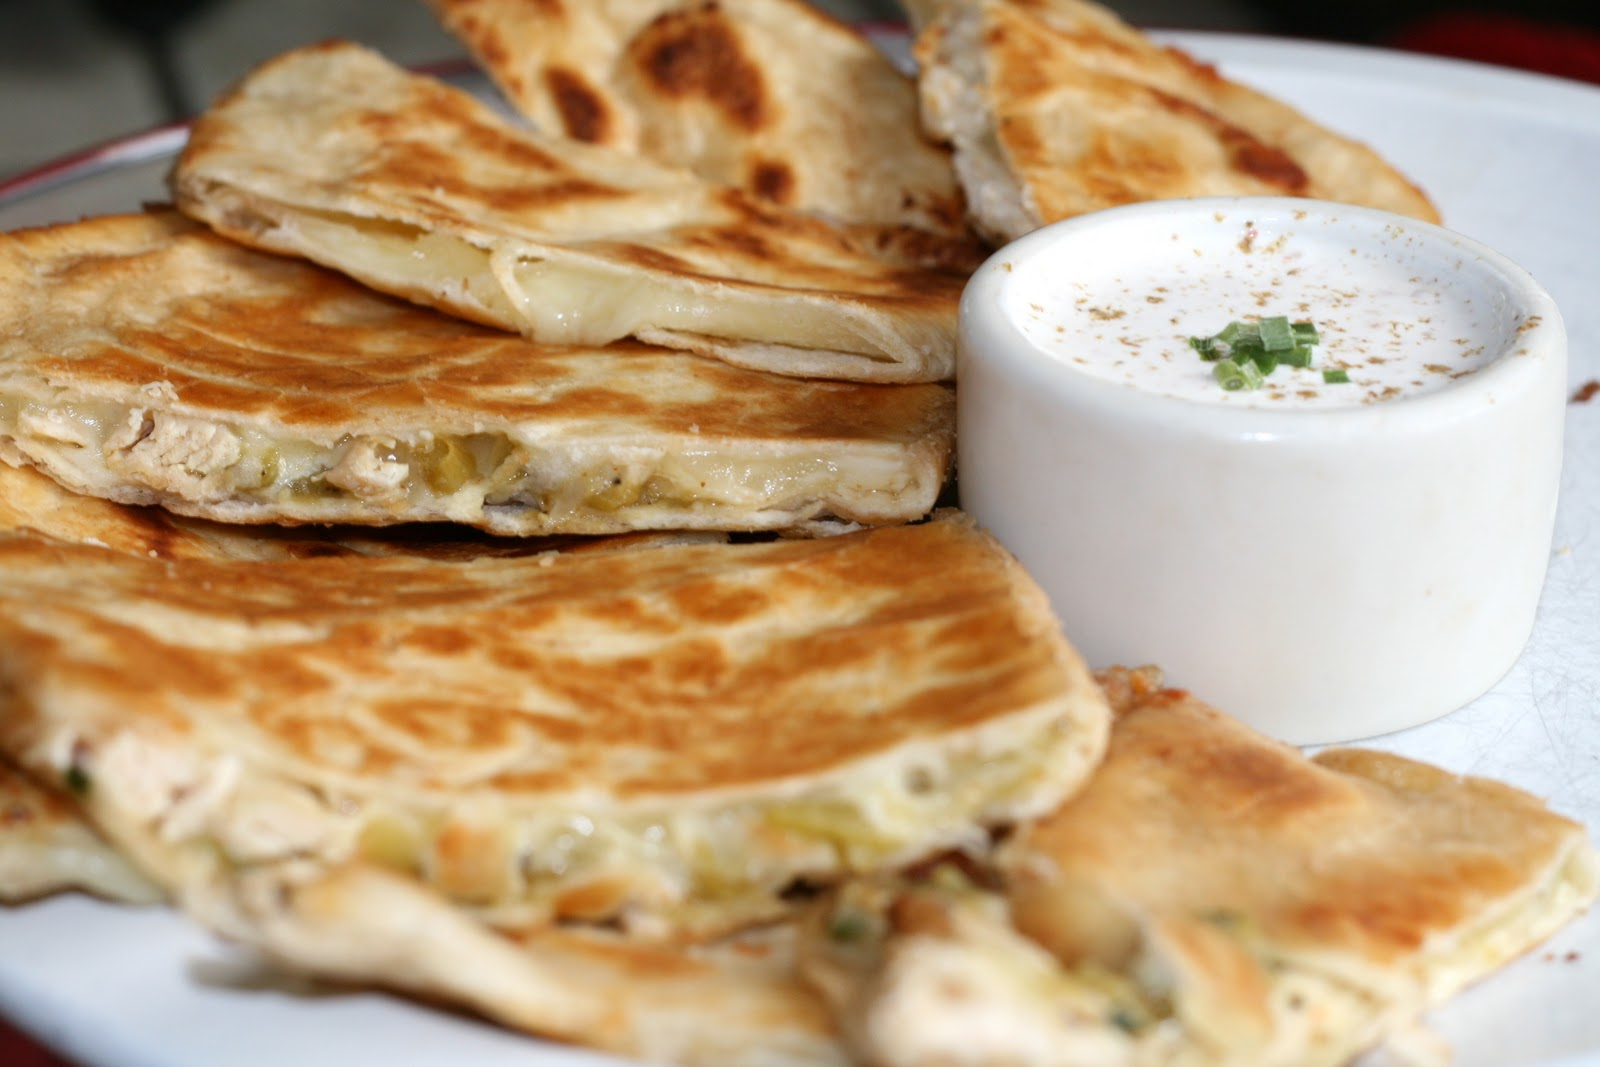 Making Quesadillas are pretty straight forward, but here's what I did: